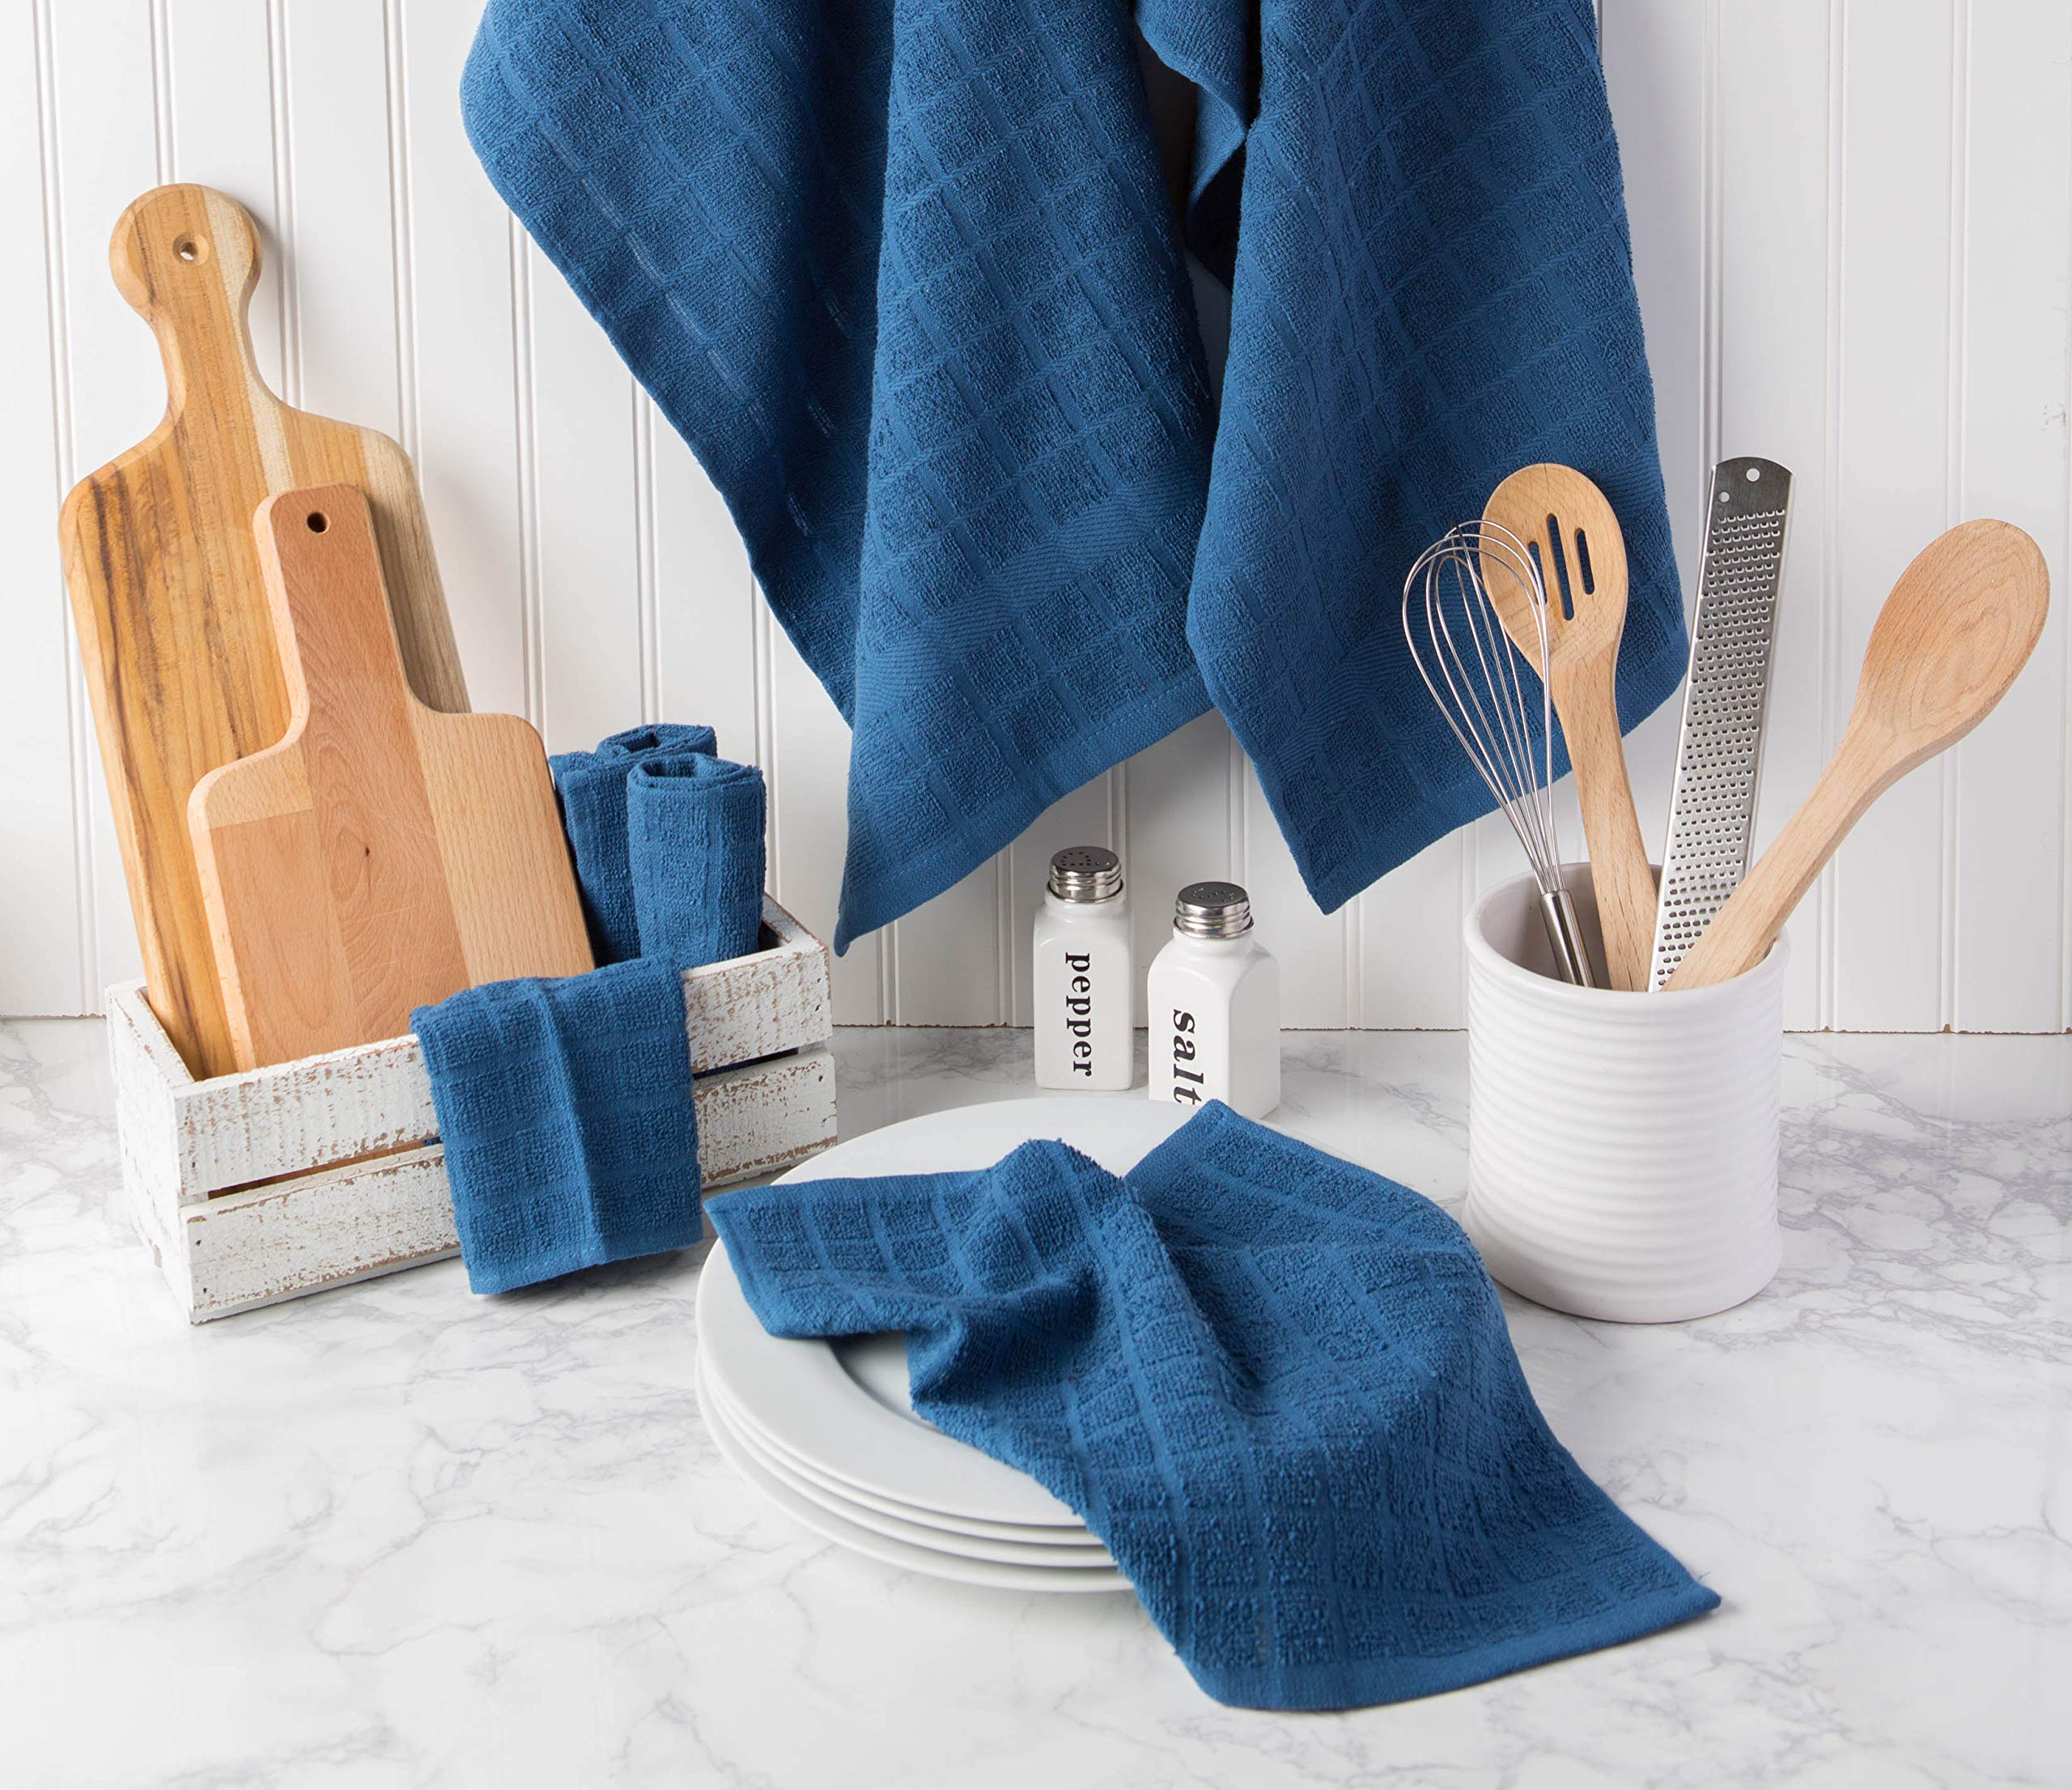 DII Cotton Terry Windowpane Dish Cloths, 12 x 12'' Set of 6, Machine Washable and Ultra Absorbent Kitchen Bar Towels-Solid Blue by DII (Image #6)